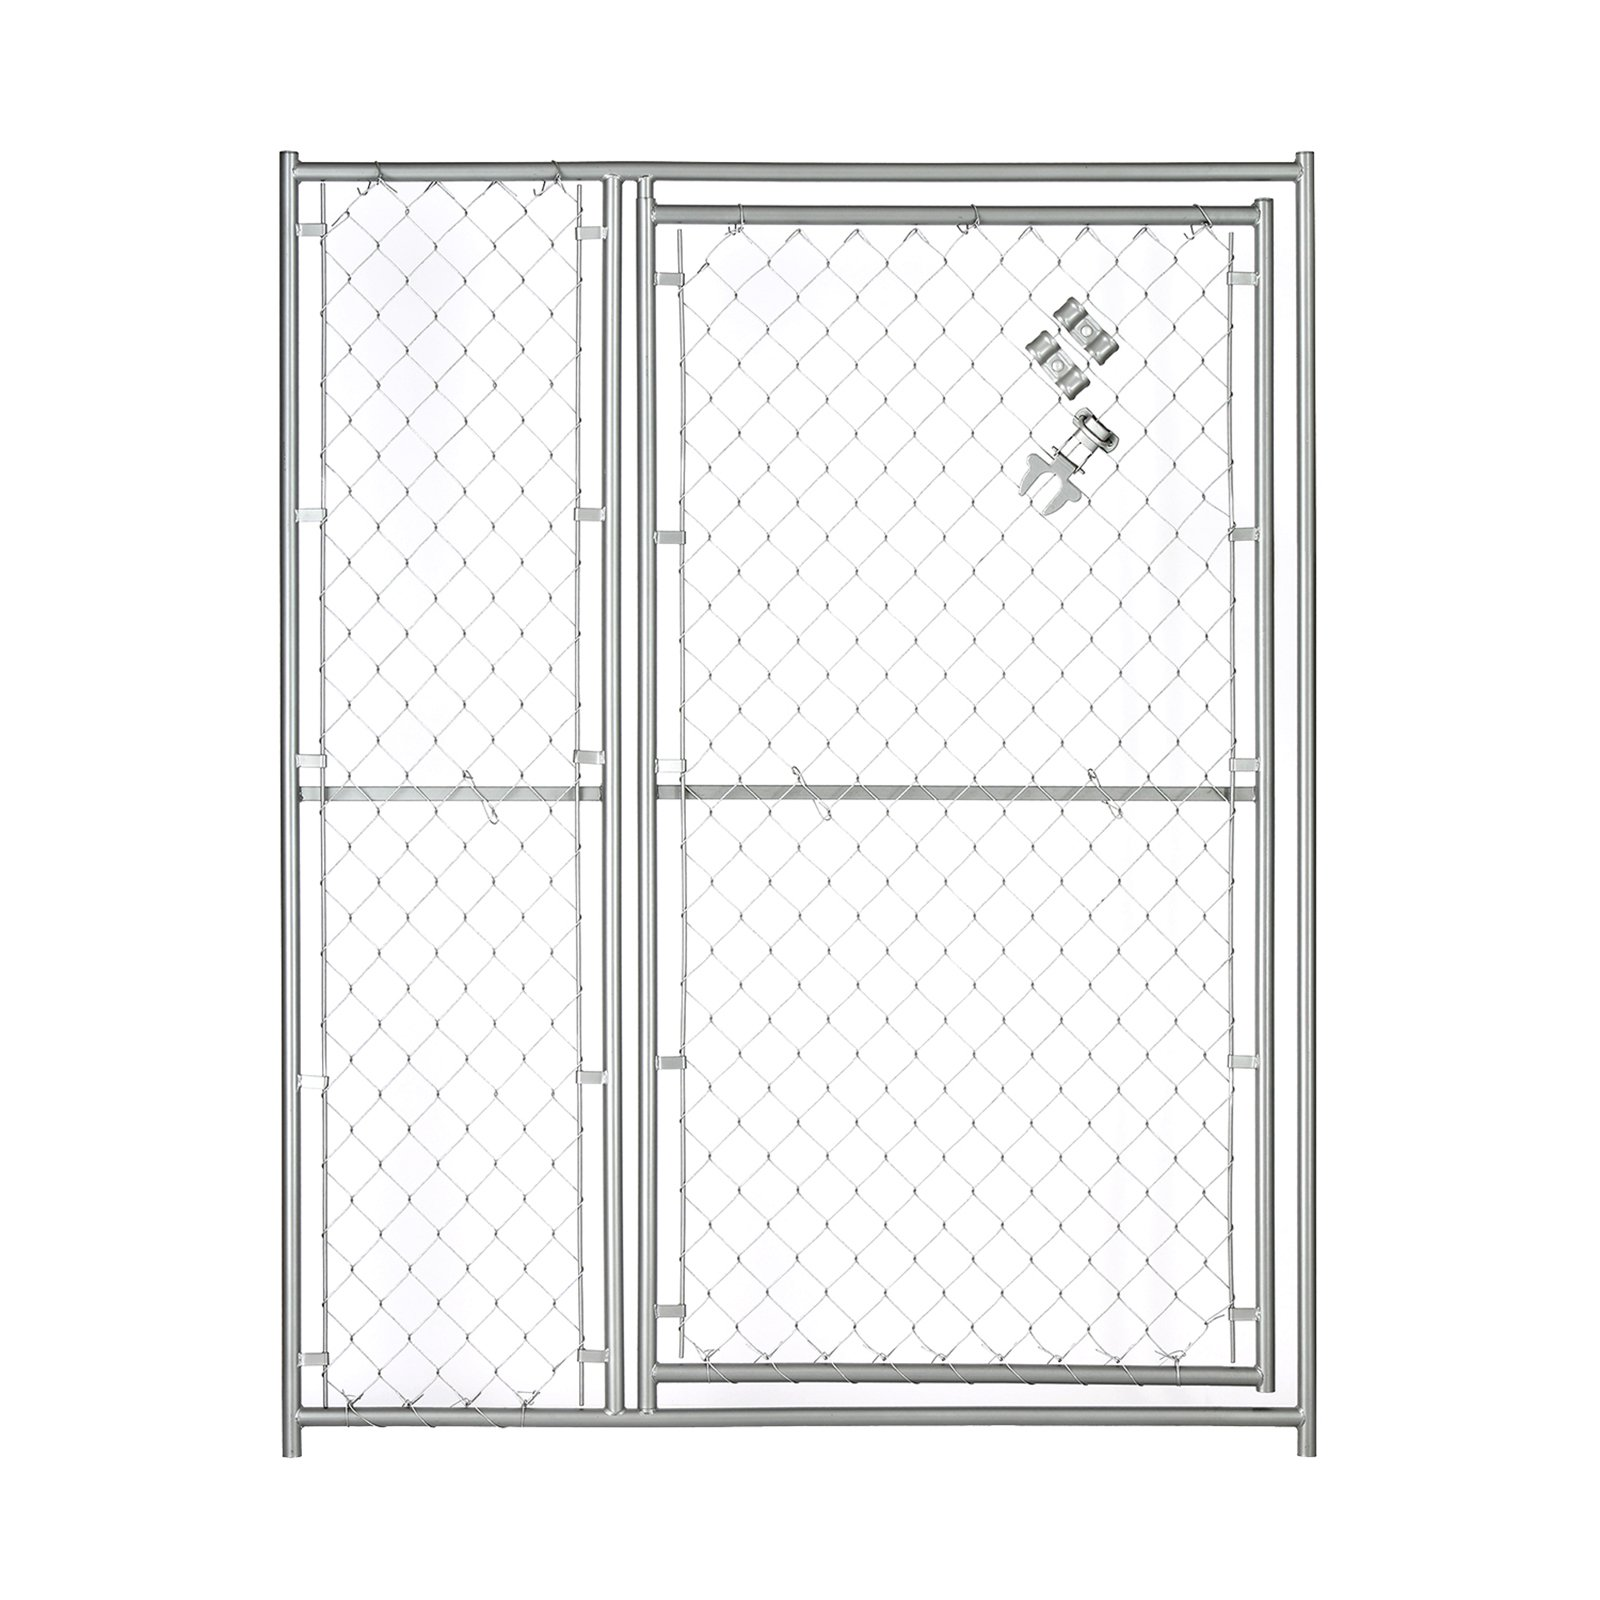 Lucky Dog 5W x 6H ft. Chain Link Modular Gate - 36 in. Op...